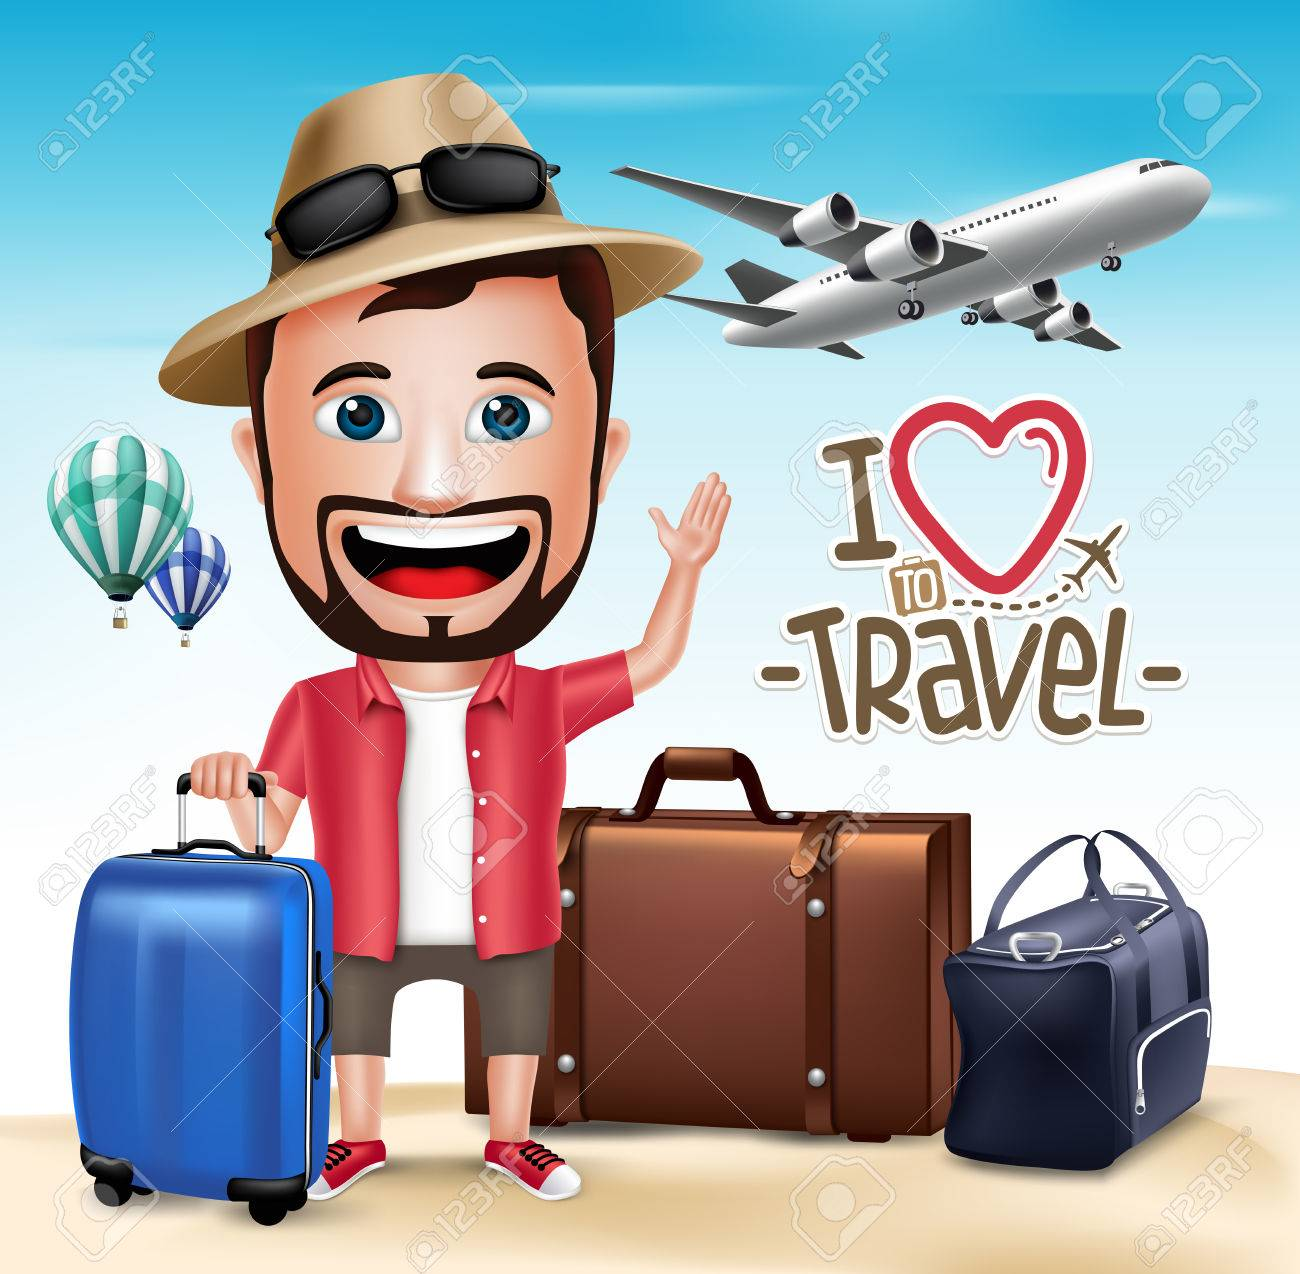 3D Realistic Tourist Man Character Wearing Summer Outfit with Set of Bags and Airplane. Vector Illustration - 44952465